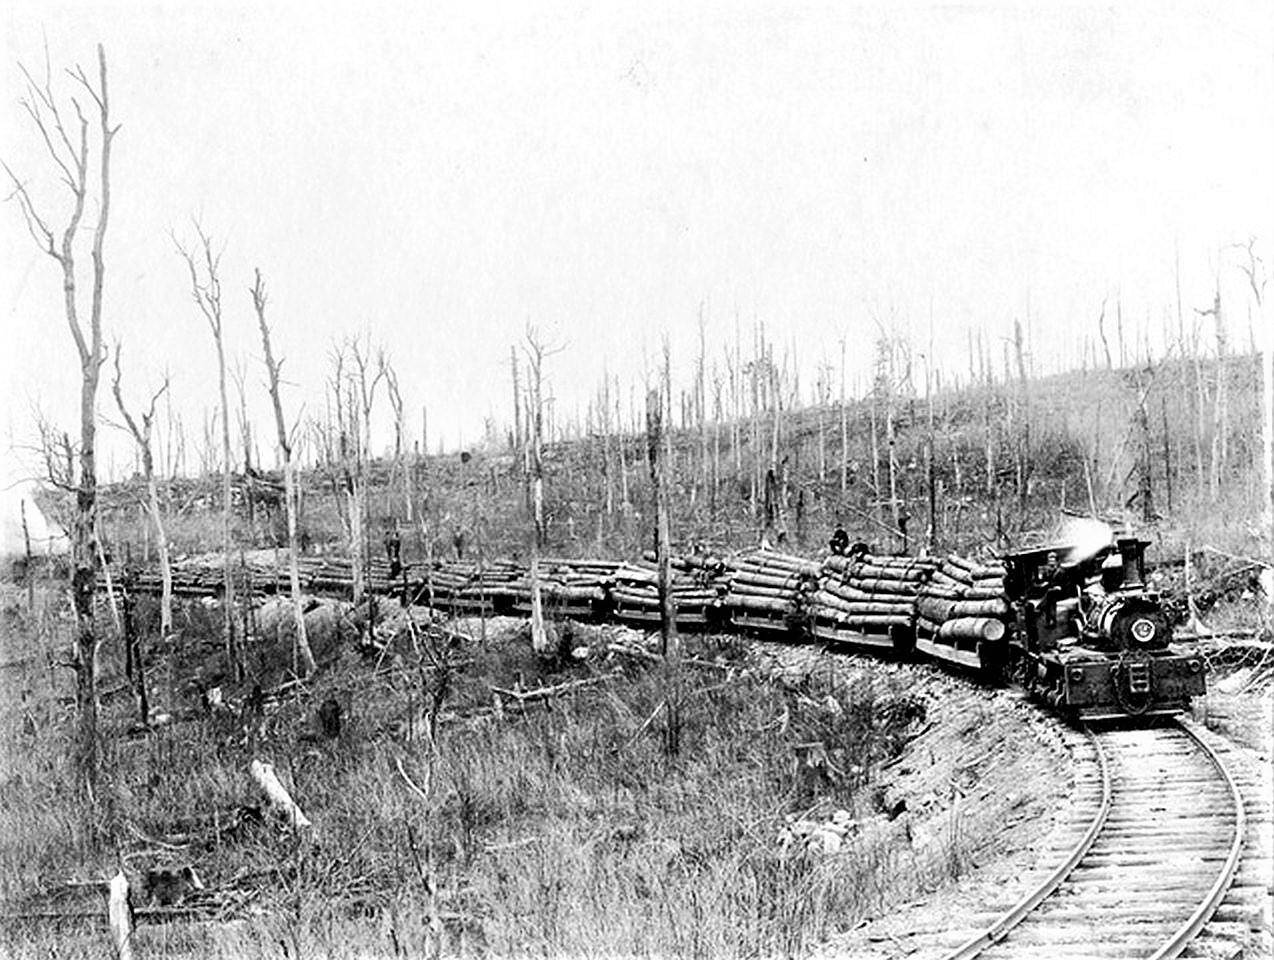 Logging train near Dobbin, WV, Encyclopedia image